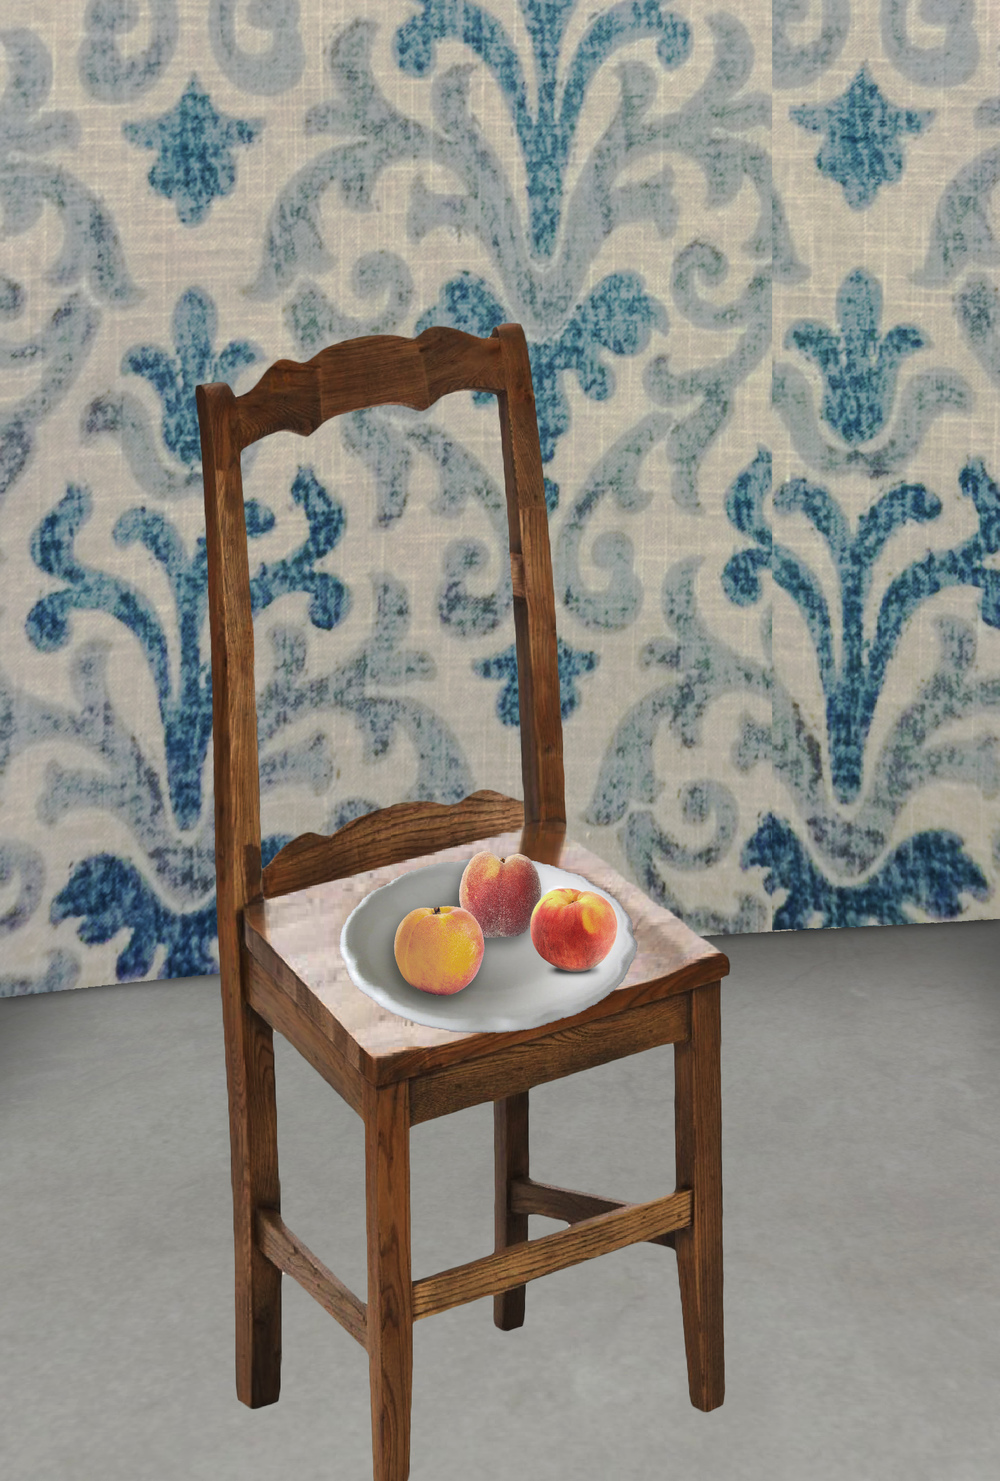 peach chair.jpg